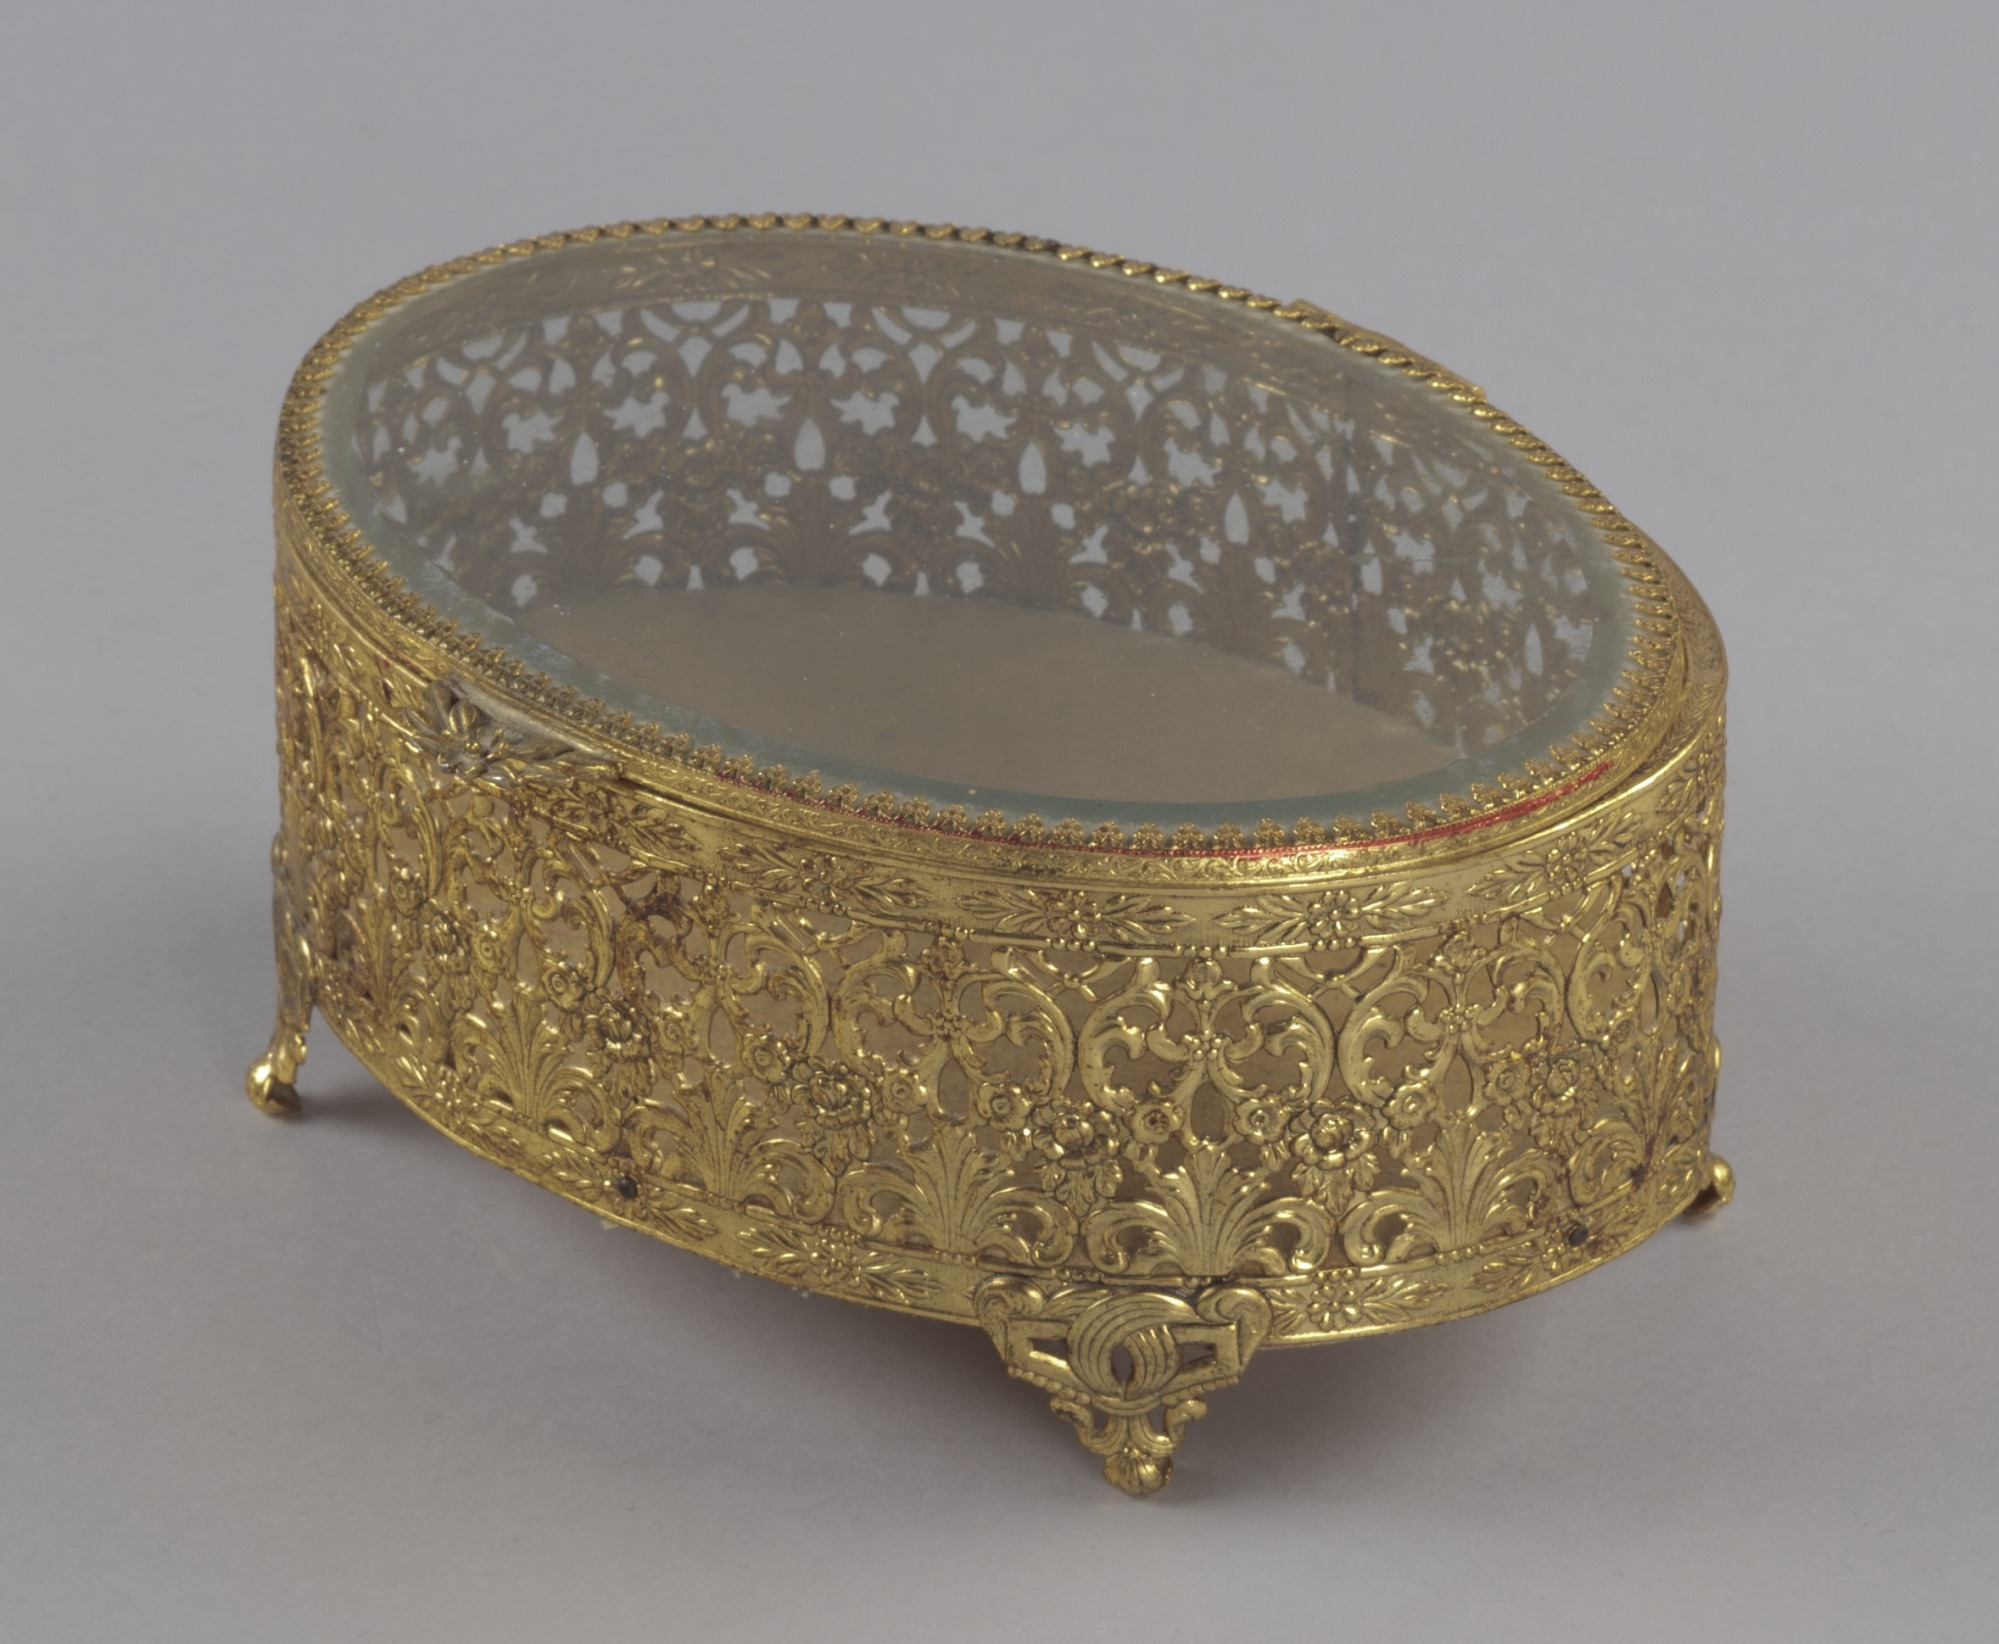 Gold metal scrollwork jewelry box from Mae's Millinery Shop